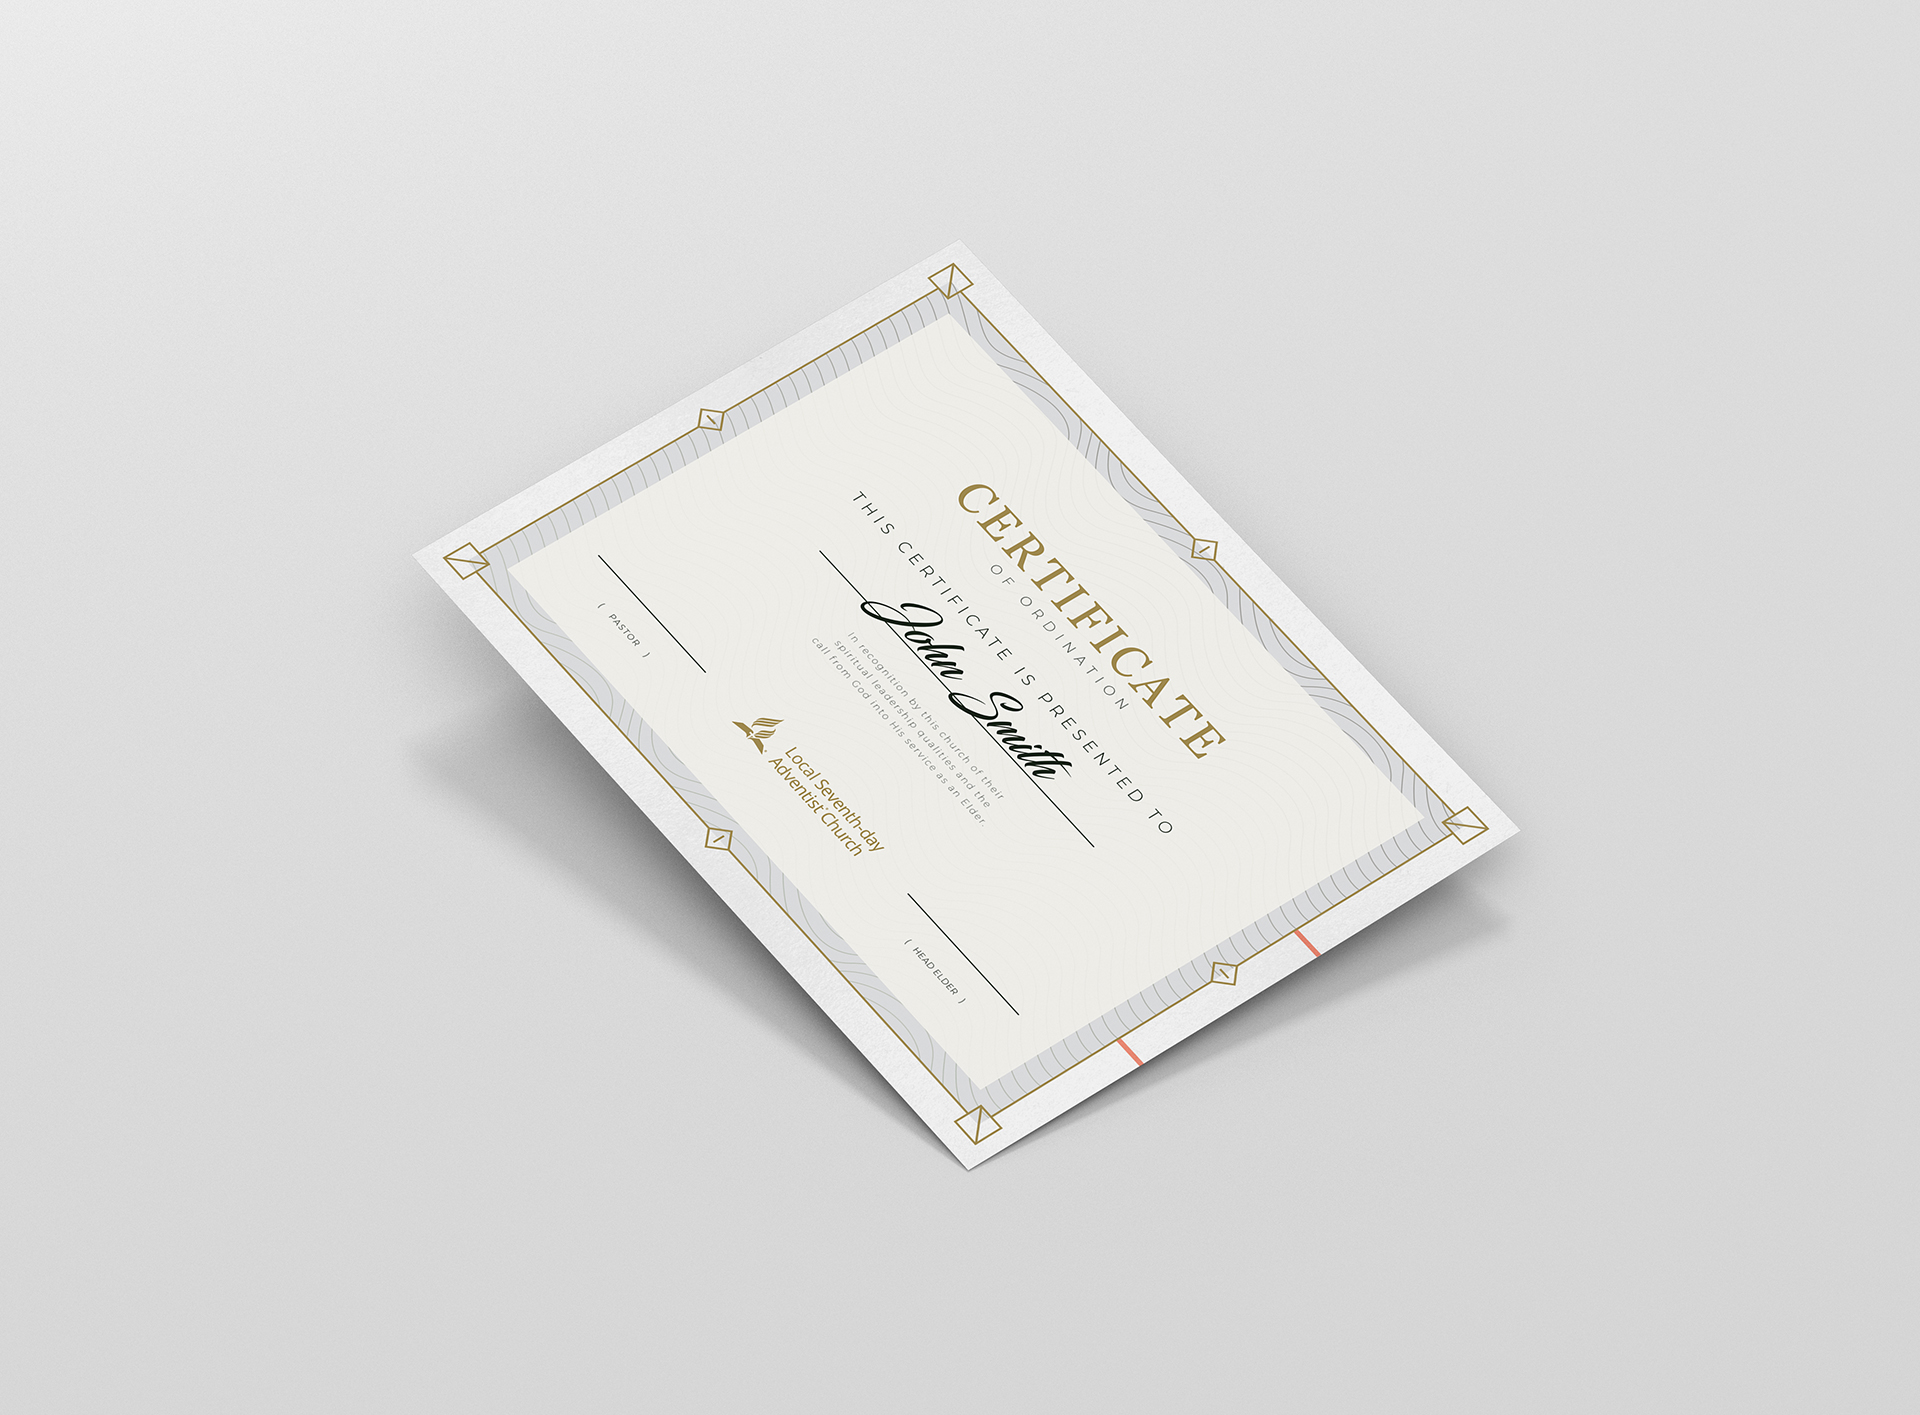 graphic relating to Printable Ordination Certificate named Printable Elder Deacon Ordination Certification Gulf